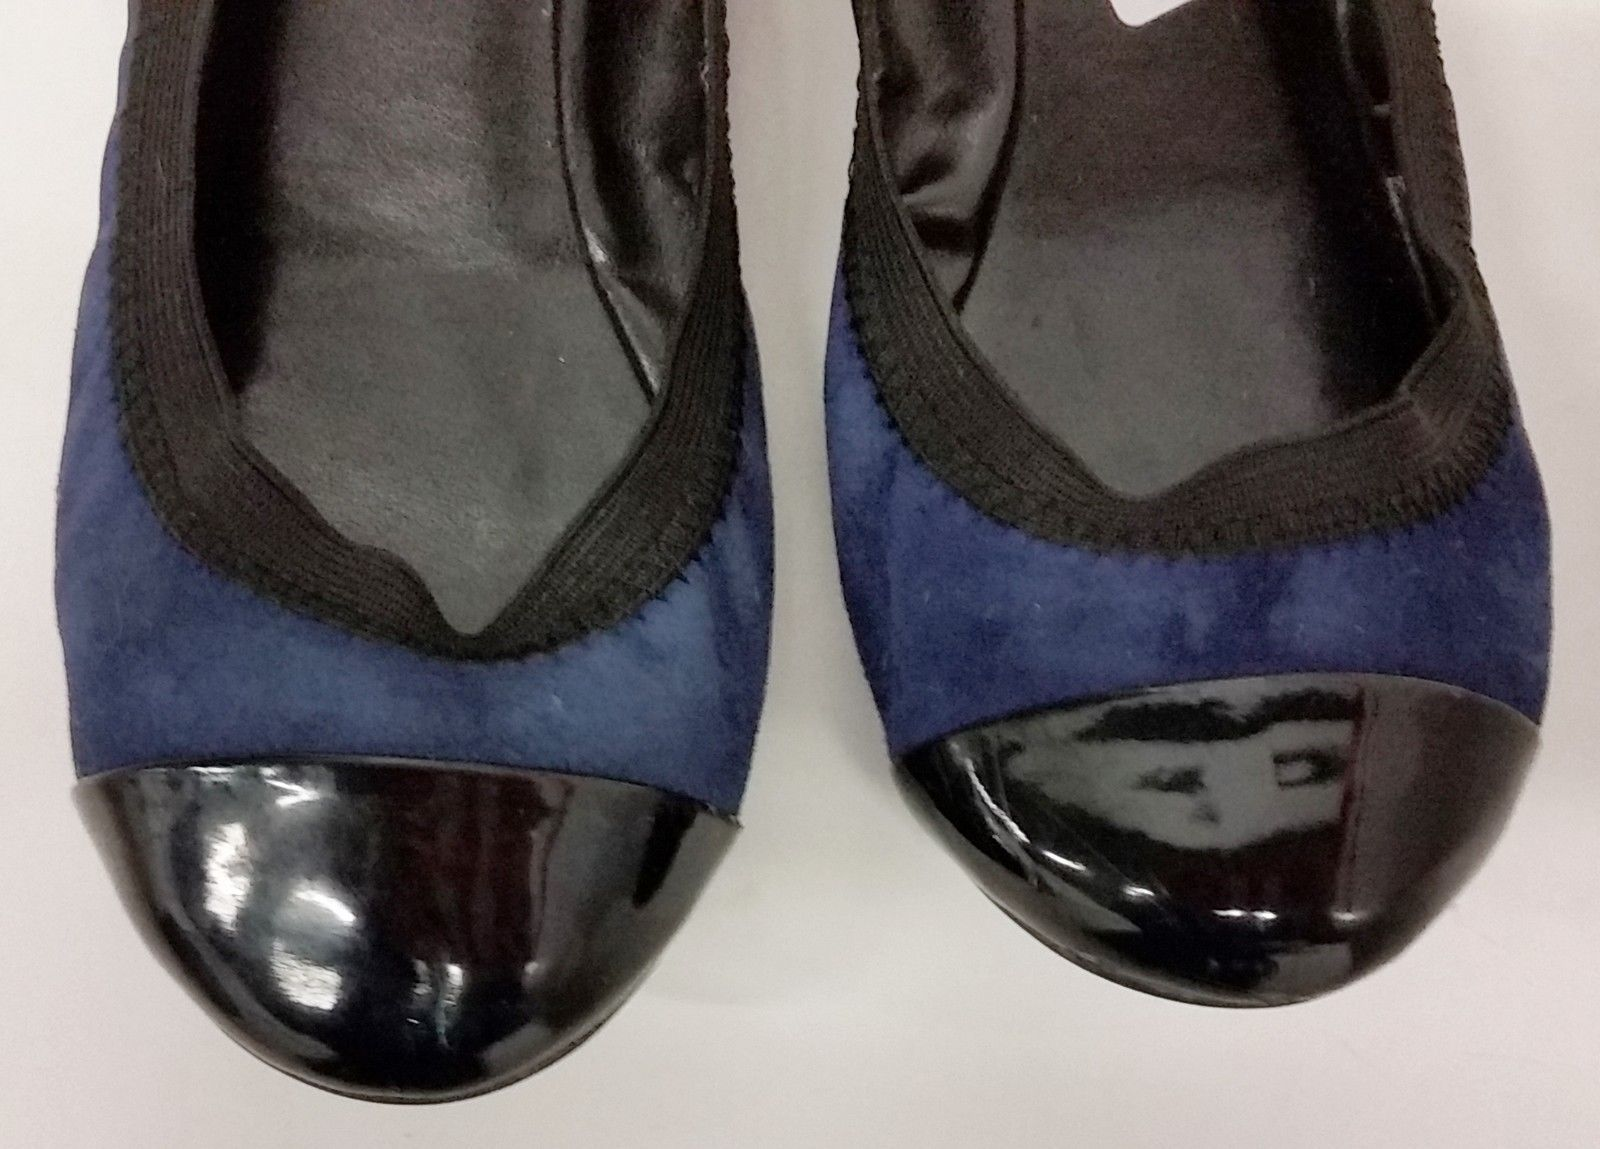 Cole Haan Shoes Ballet Flats Patent Leather Toe/Heel Black/Blue  Womens Size 6B